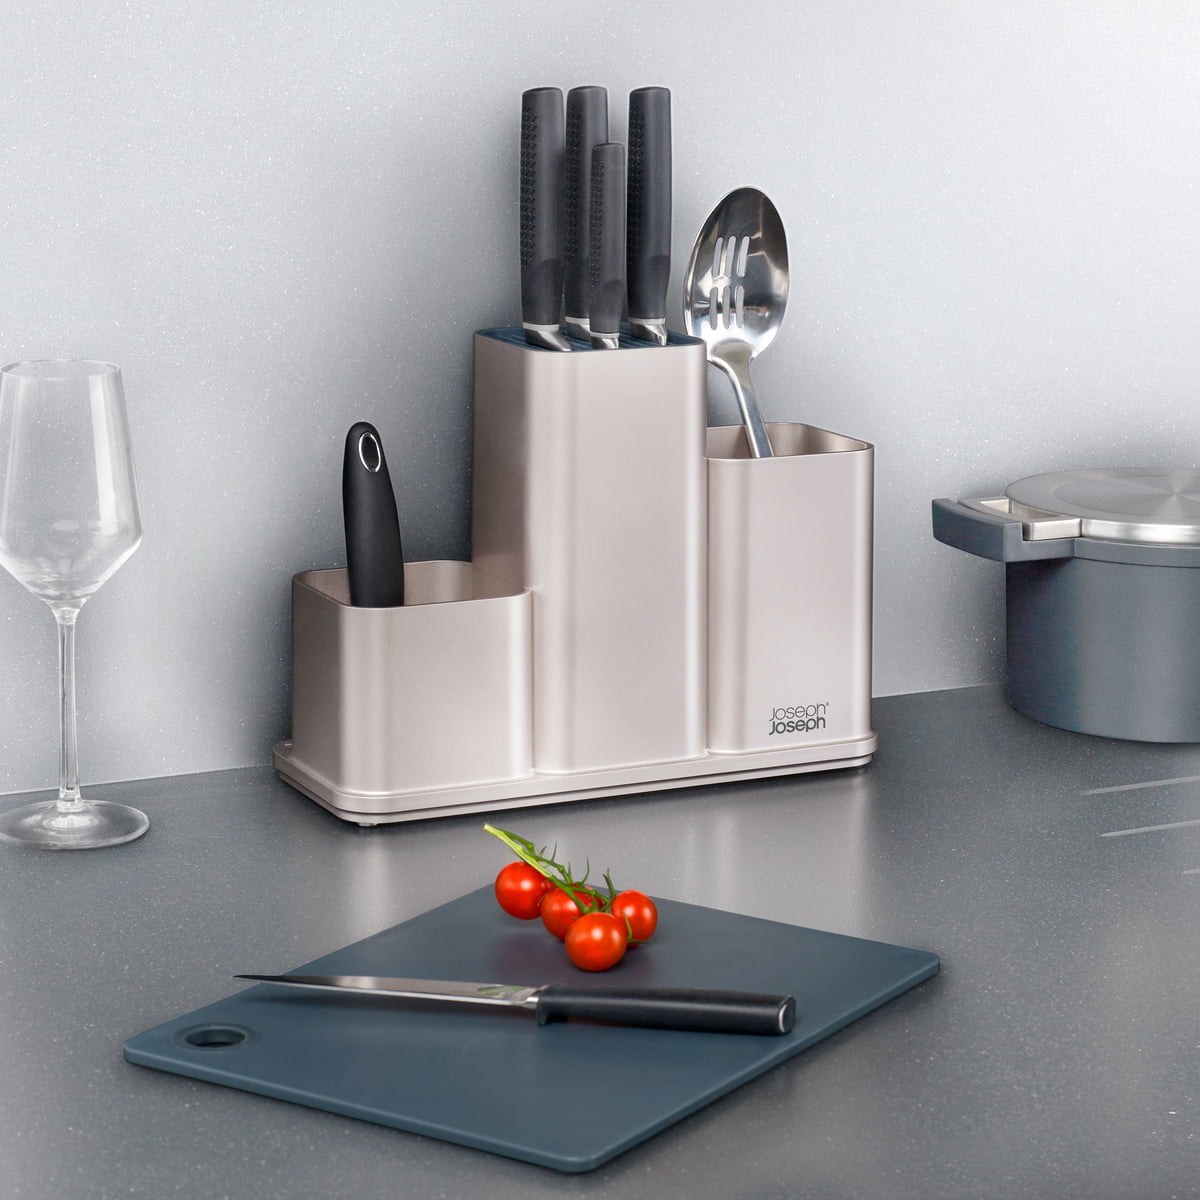 The Joseph Joseph   CounterStore Kitchen Worktop Organiser With Chopping  Board